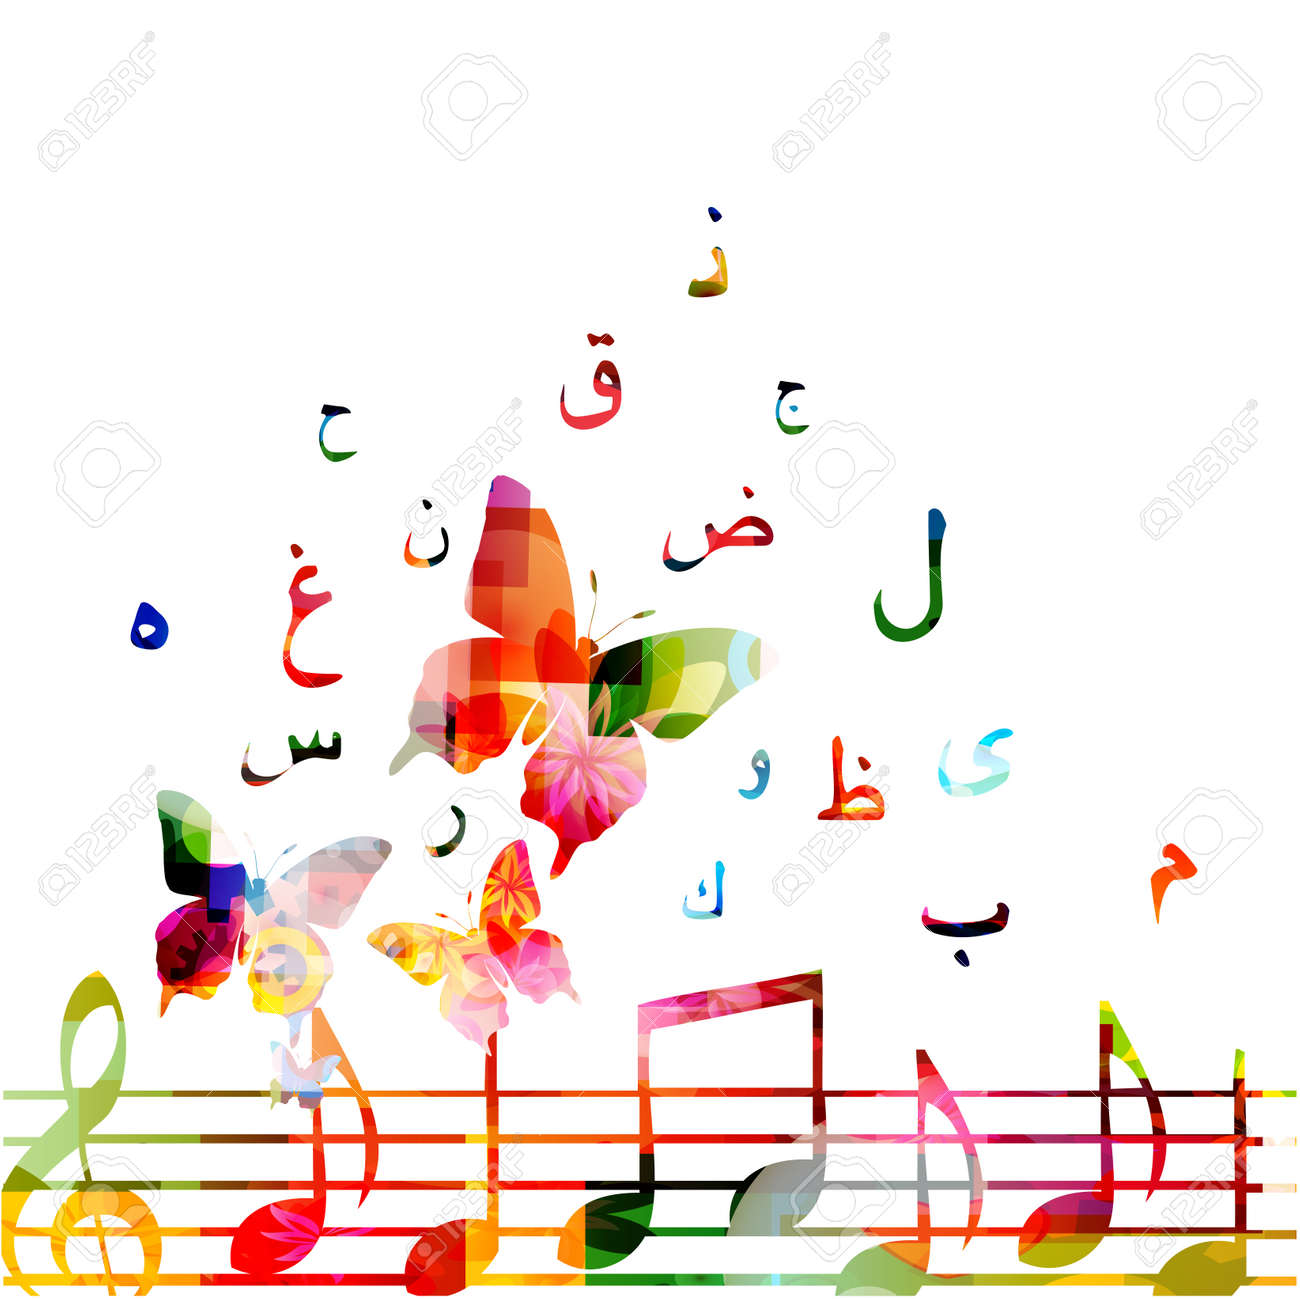 Music with colorful music notes and Arabic Islamic calligraphy symbols - 118423663